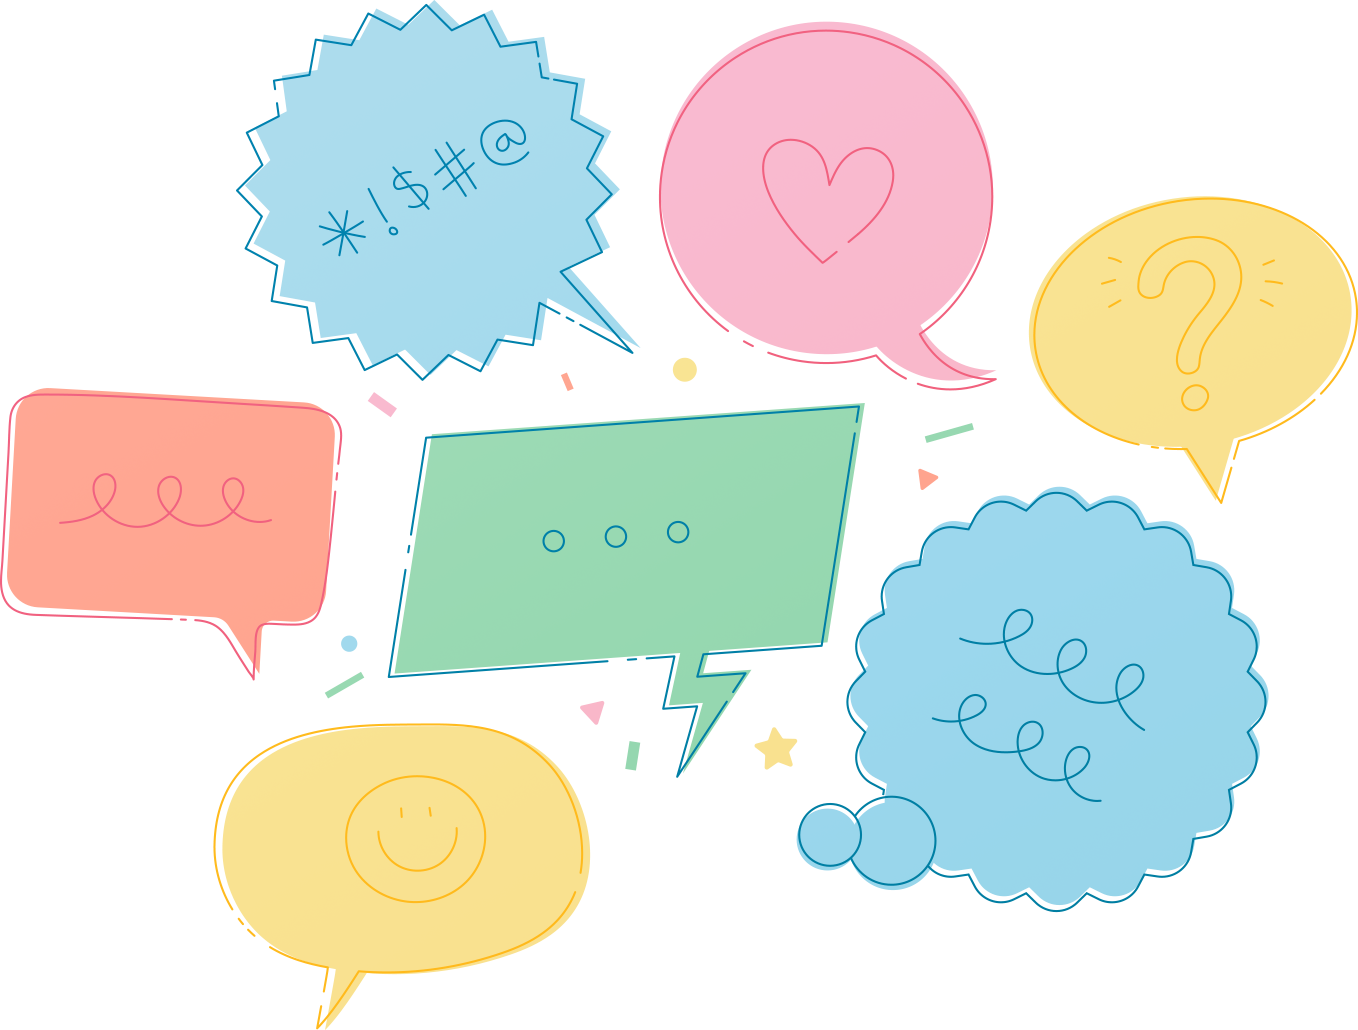 Multiple speech bubbles with random symbols